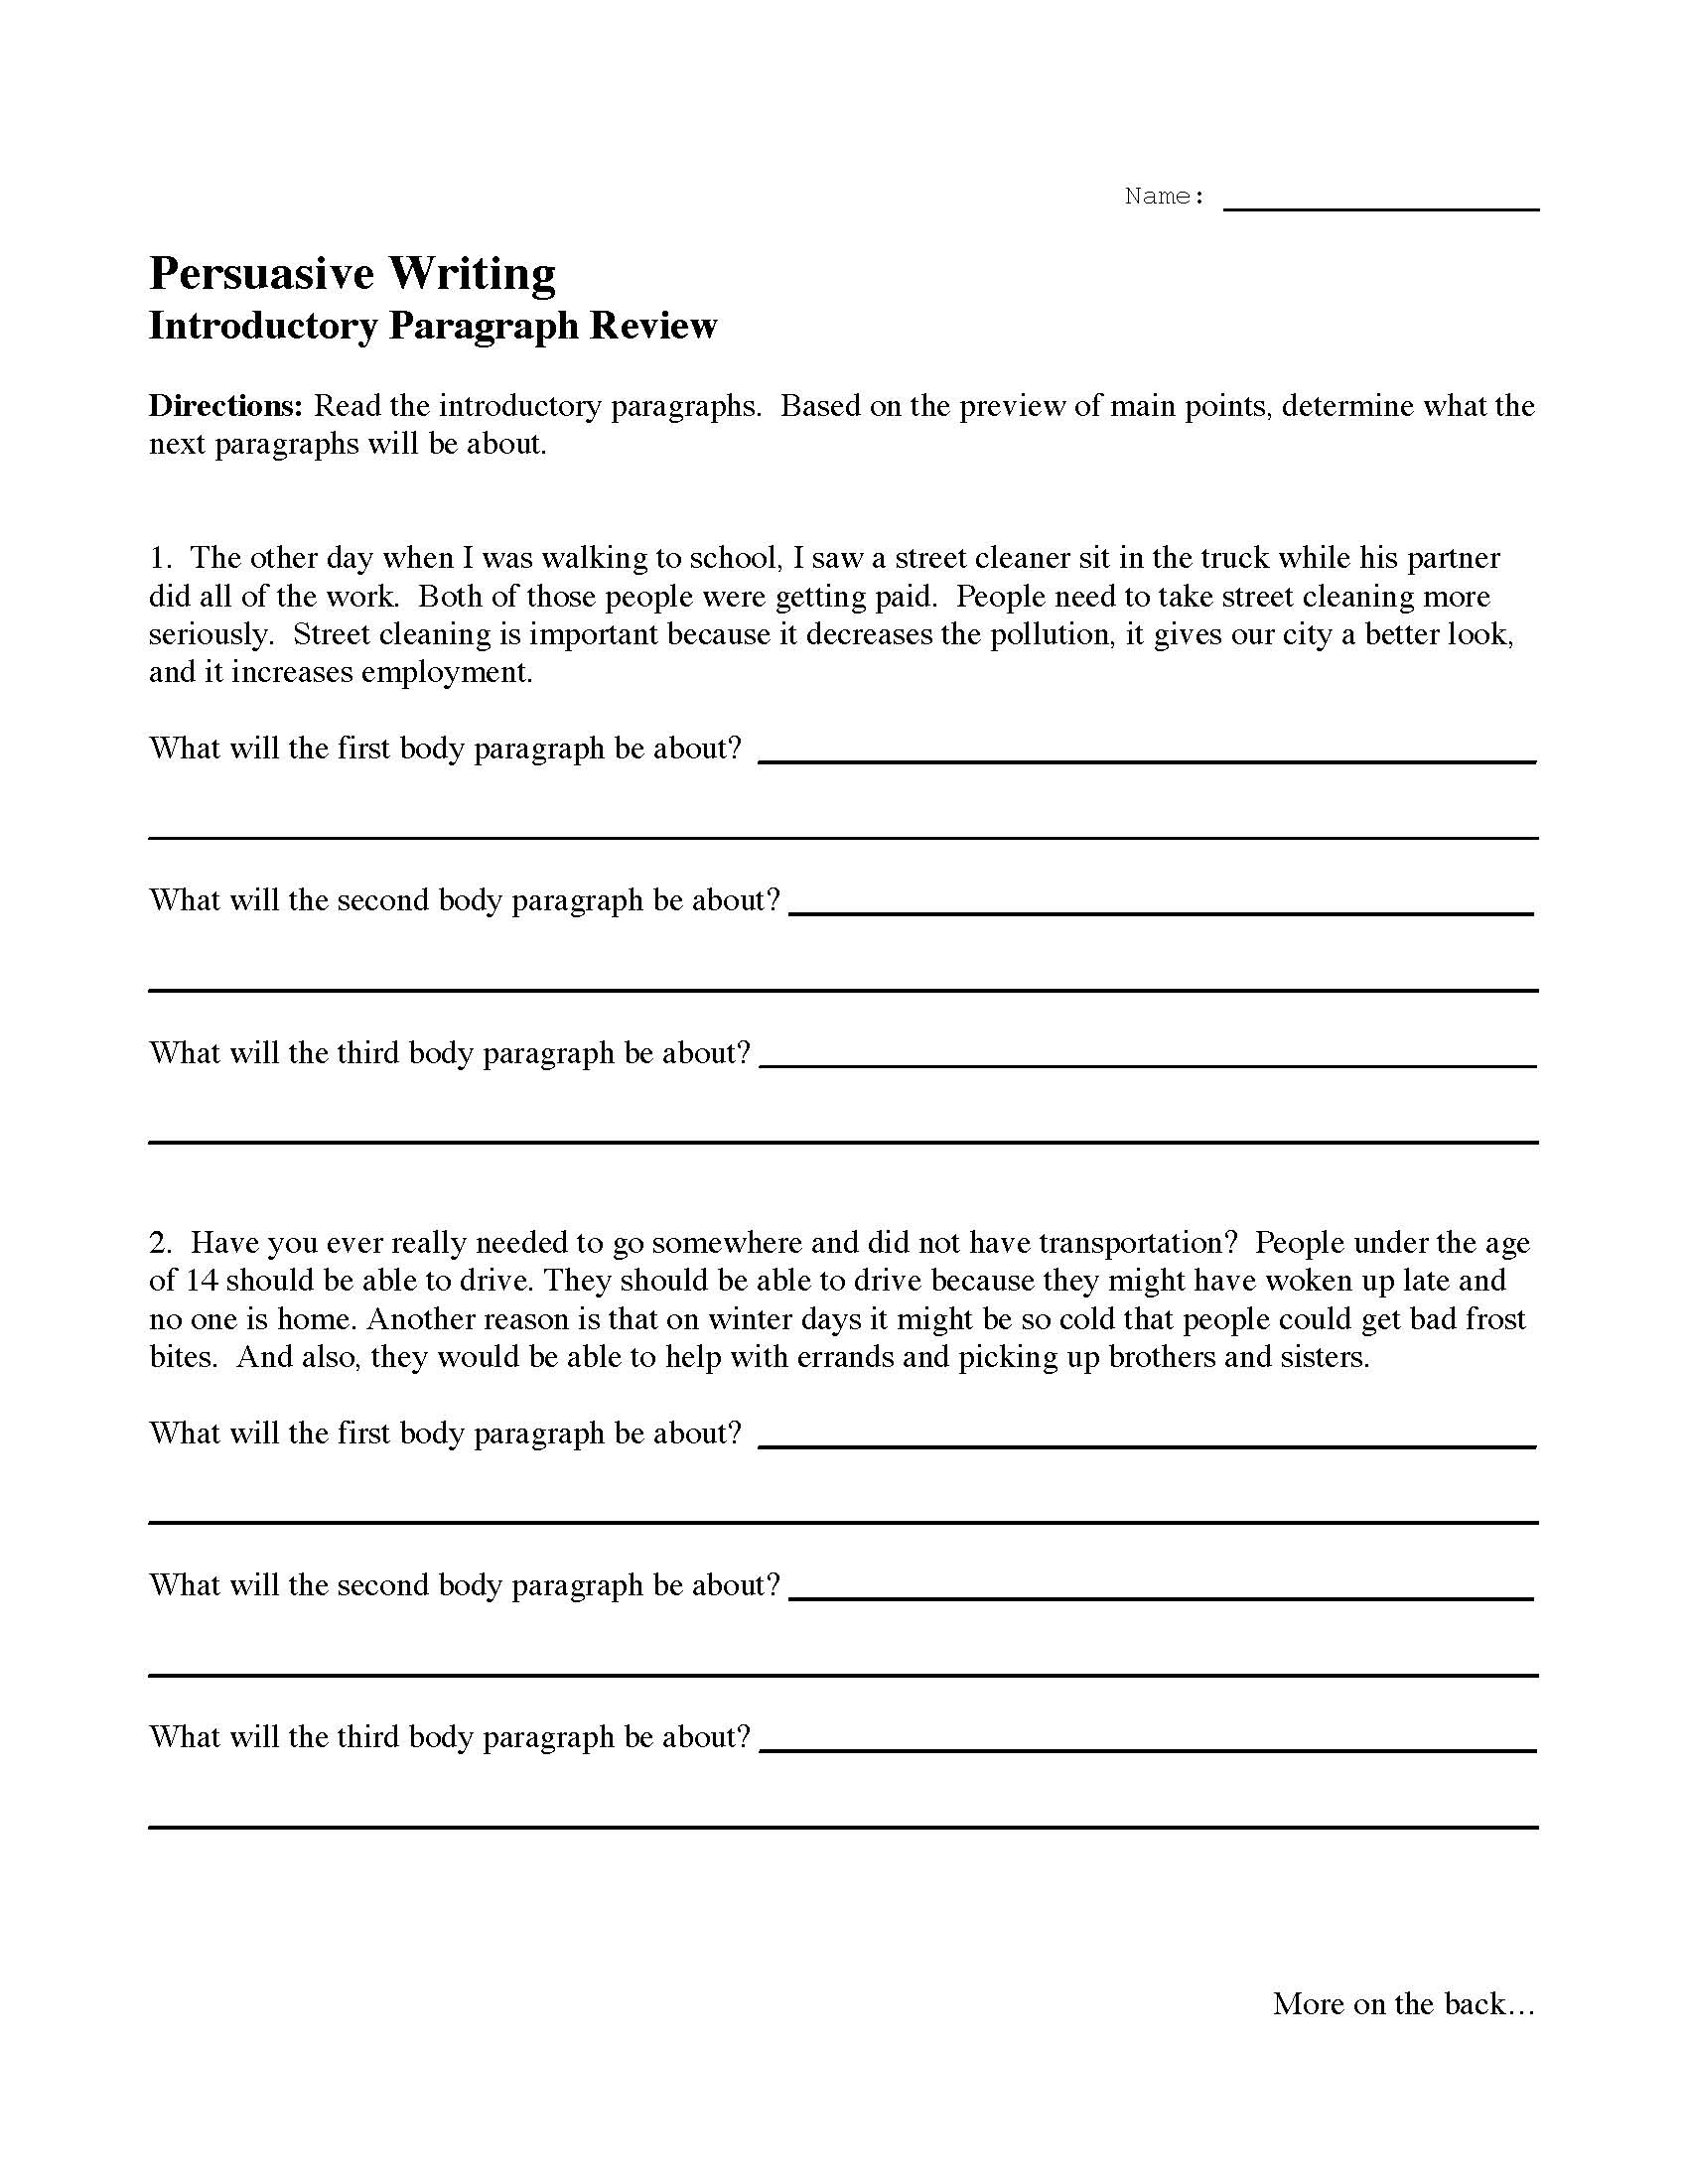 This is a preview image of the Introductory Paragraph Review Activity.